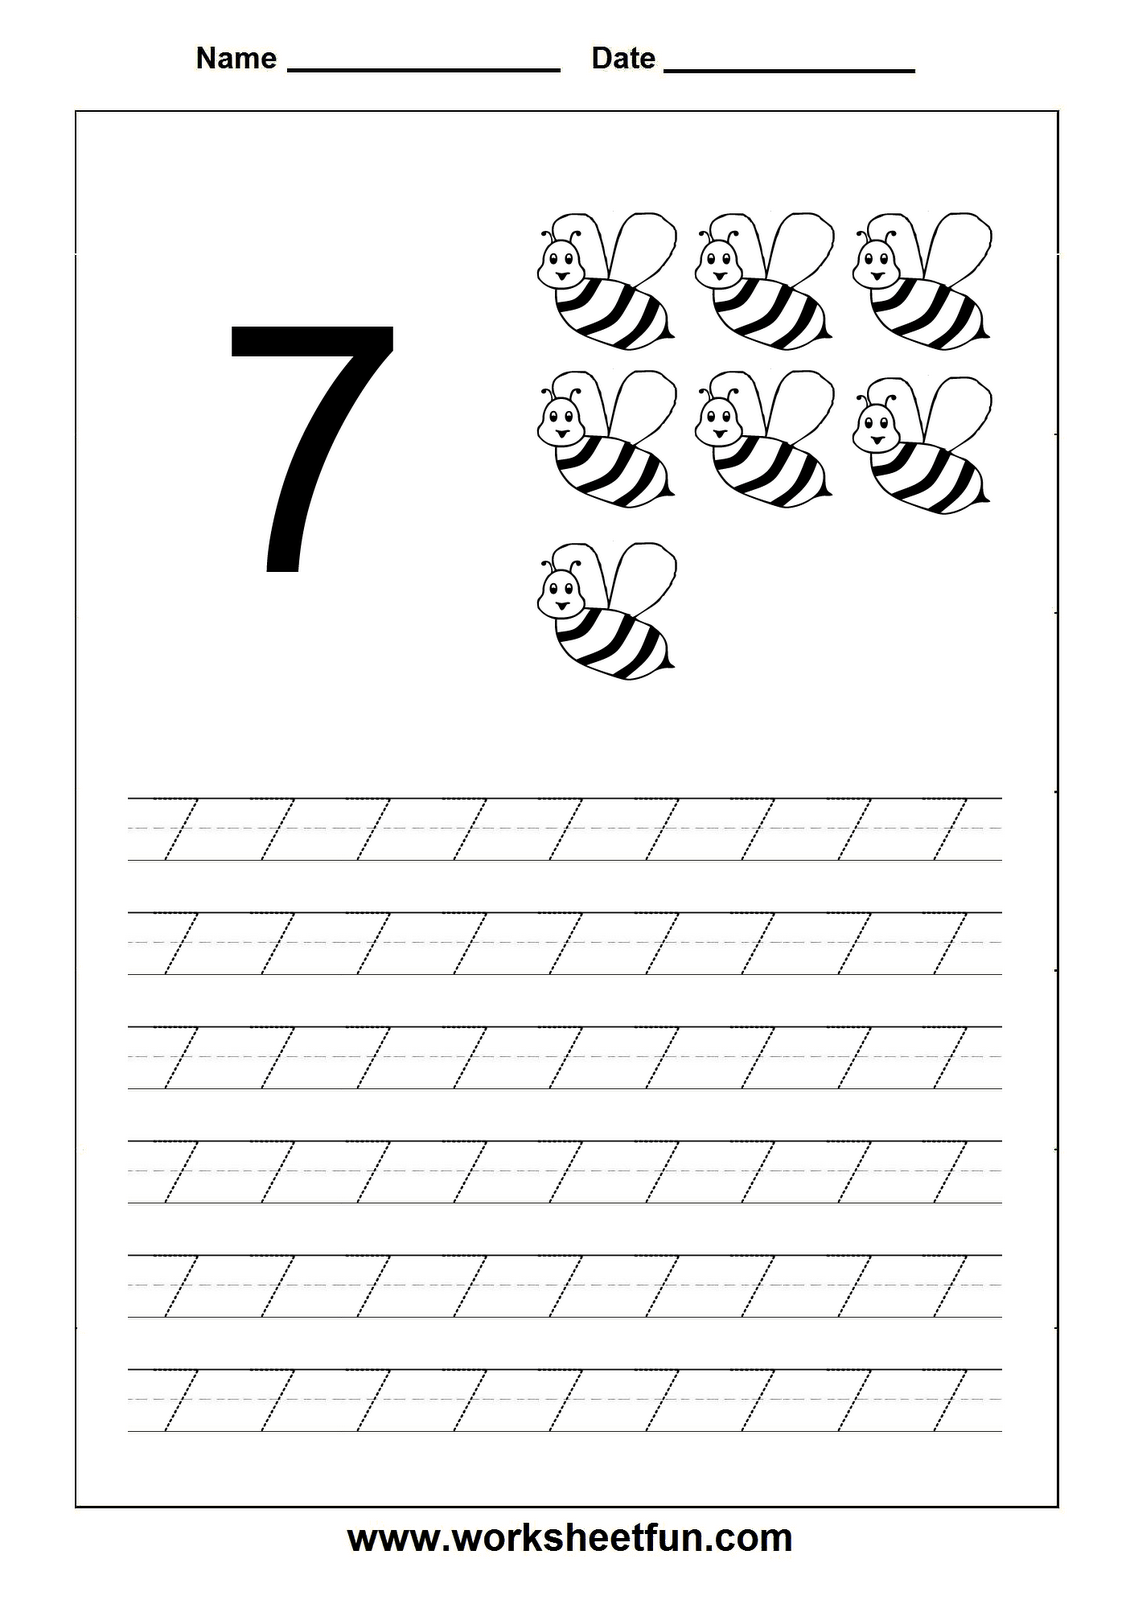 16 Kindergarten Math Worksheets 0 5